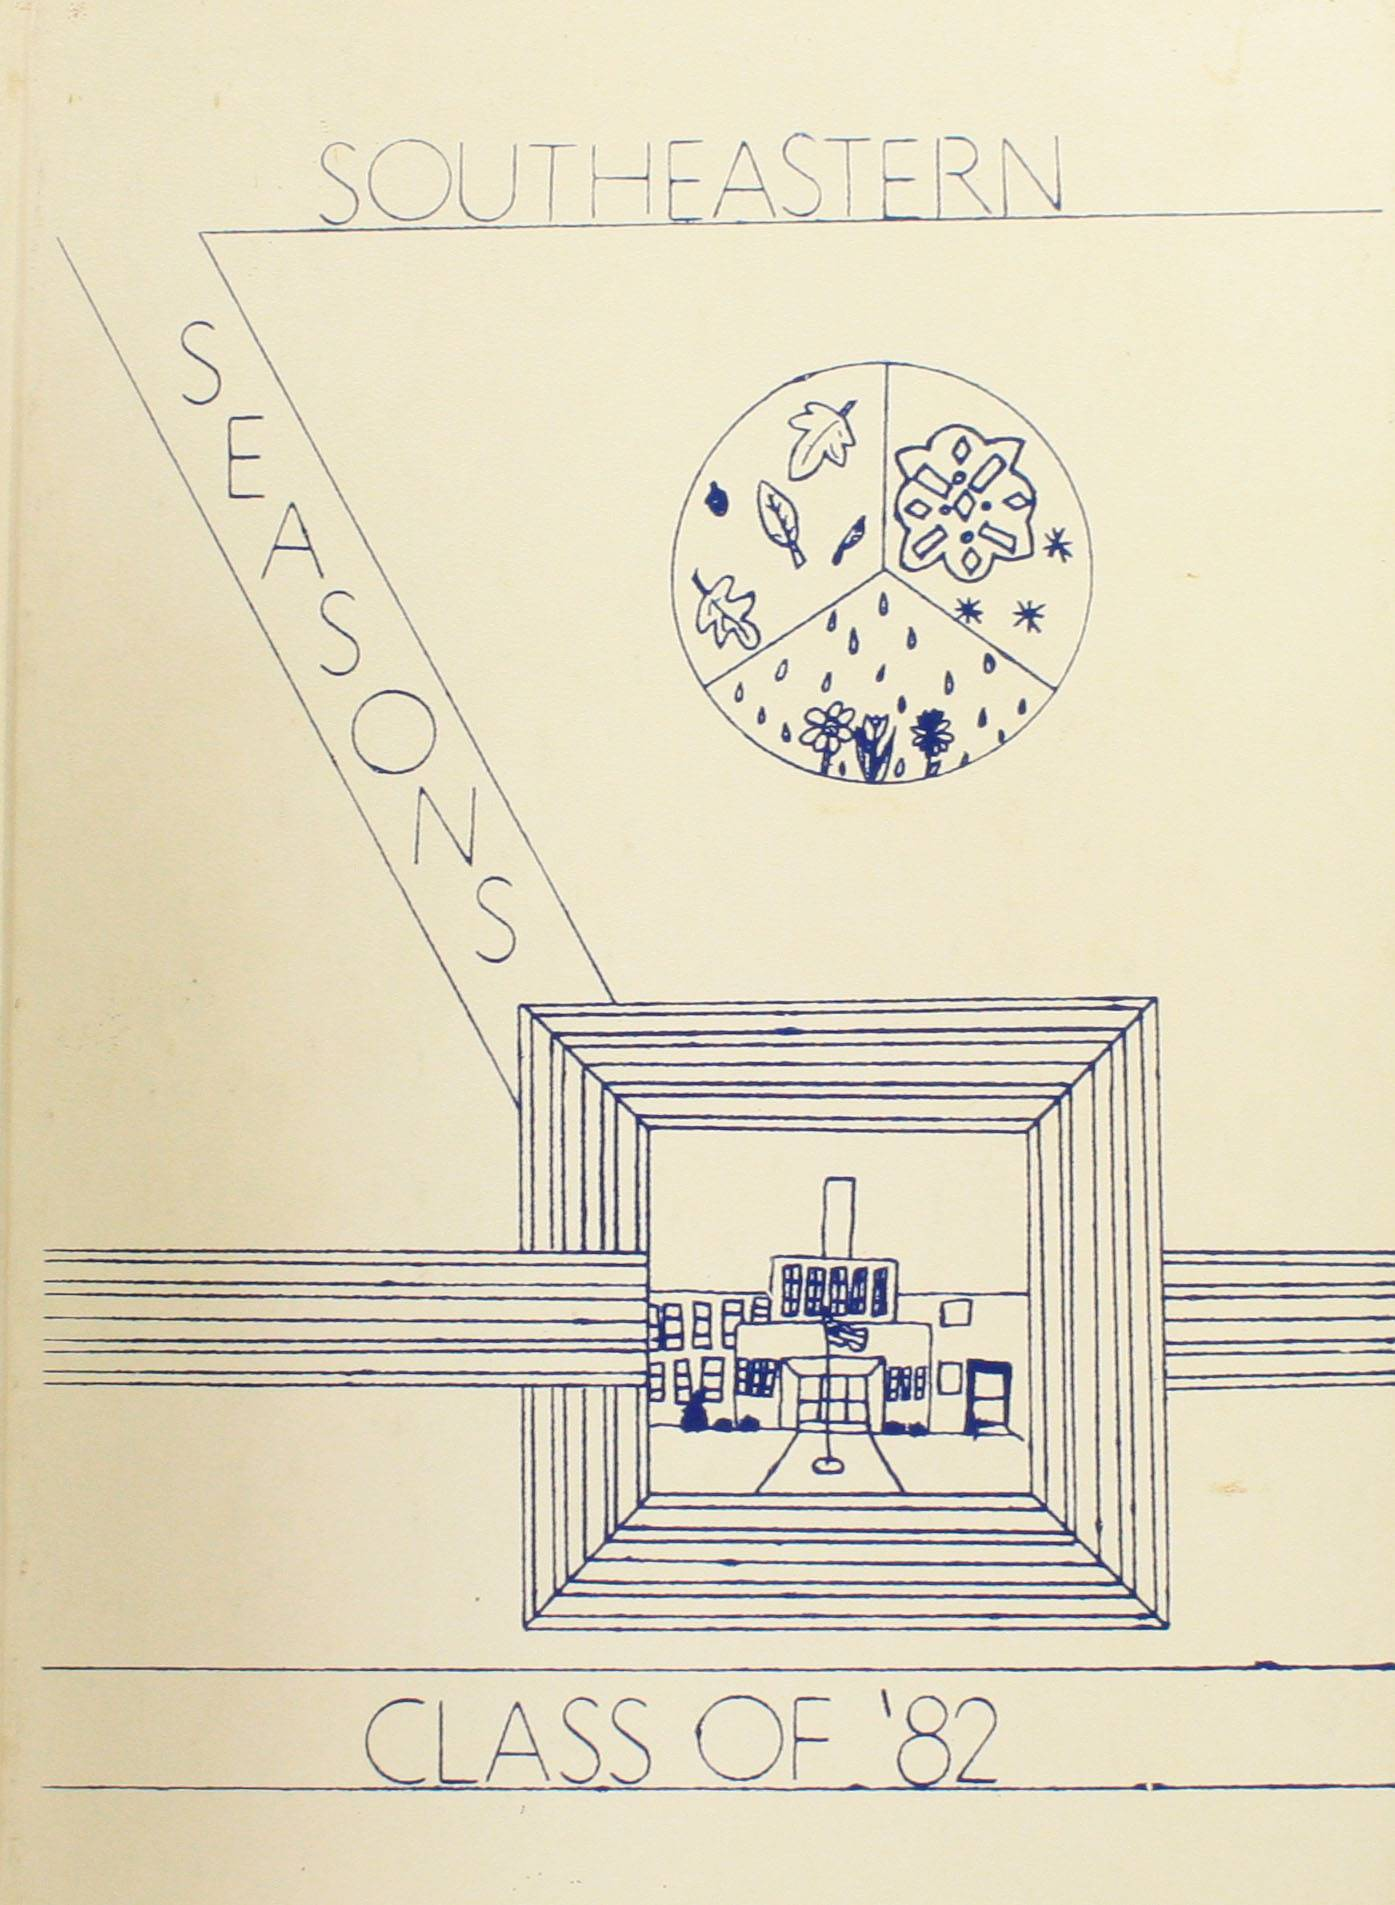 1982 Yearbook Cover